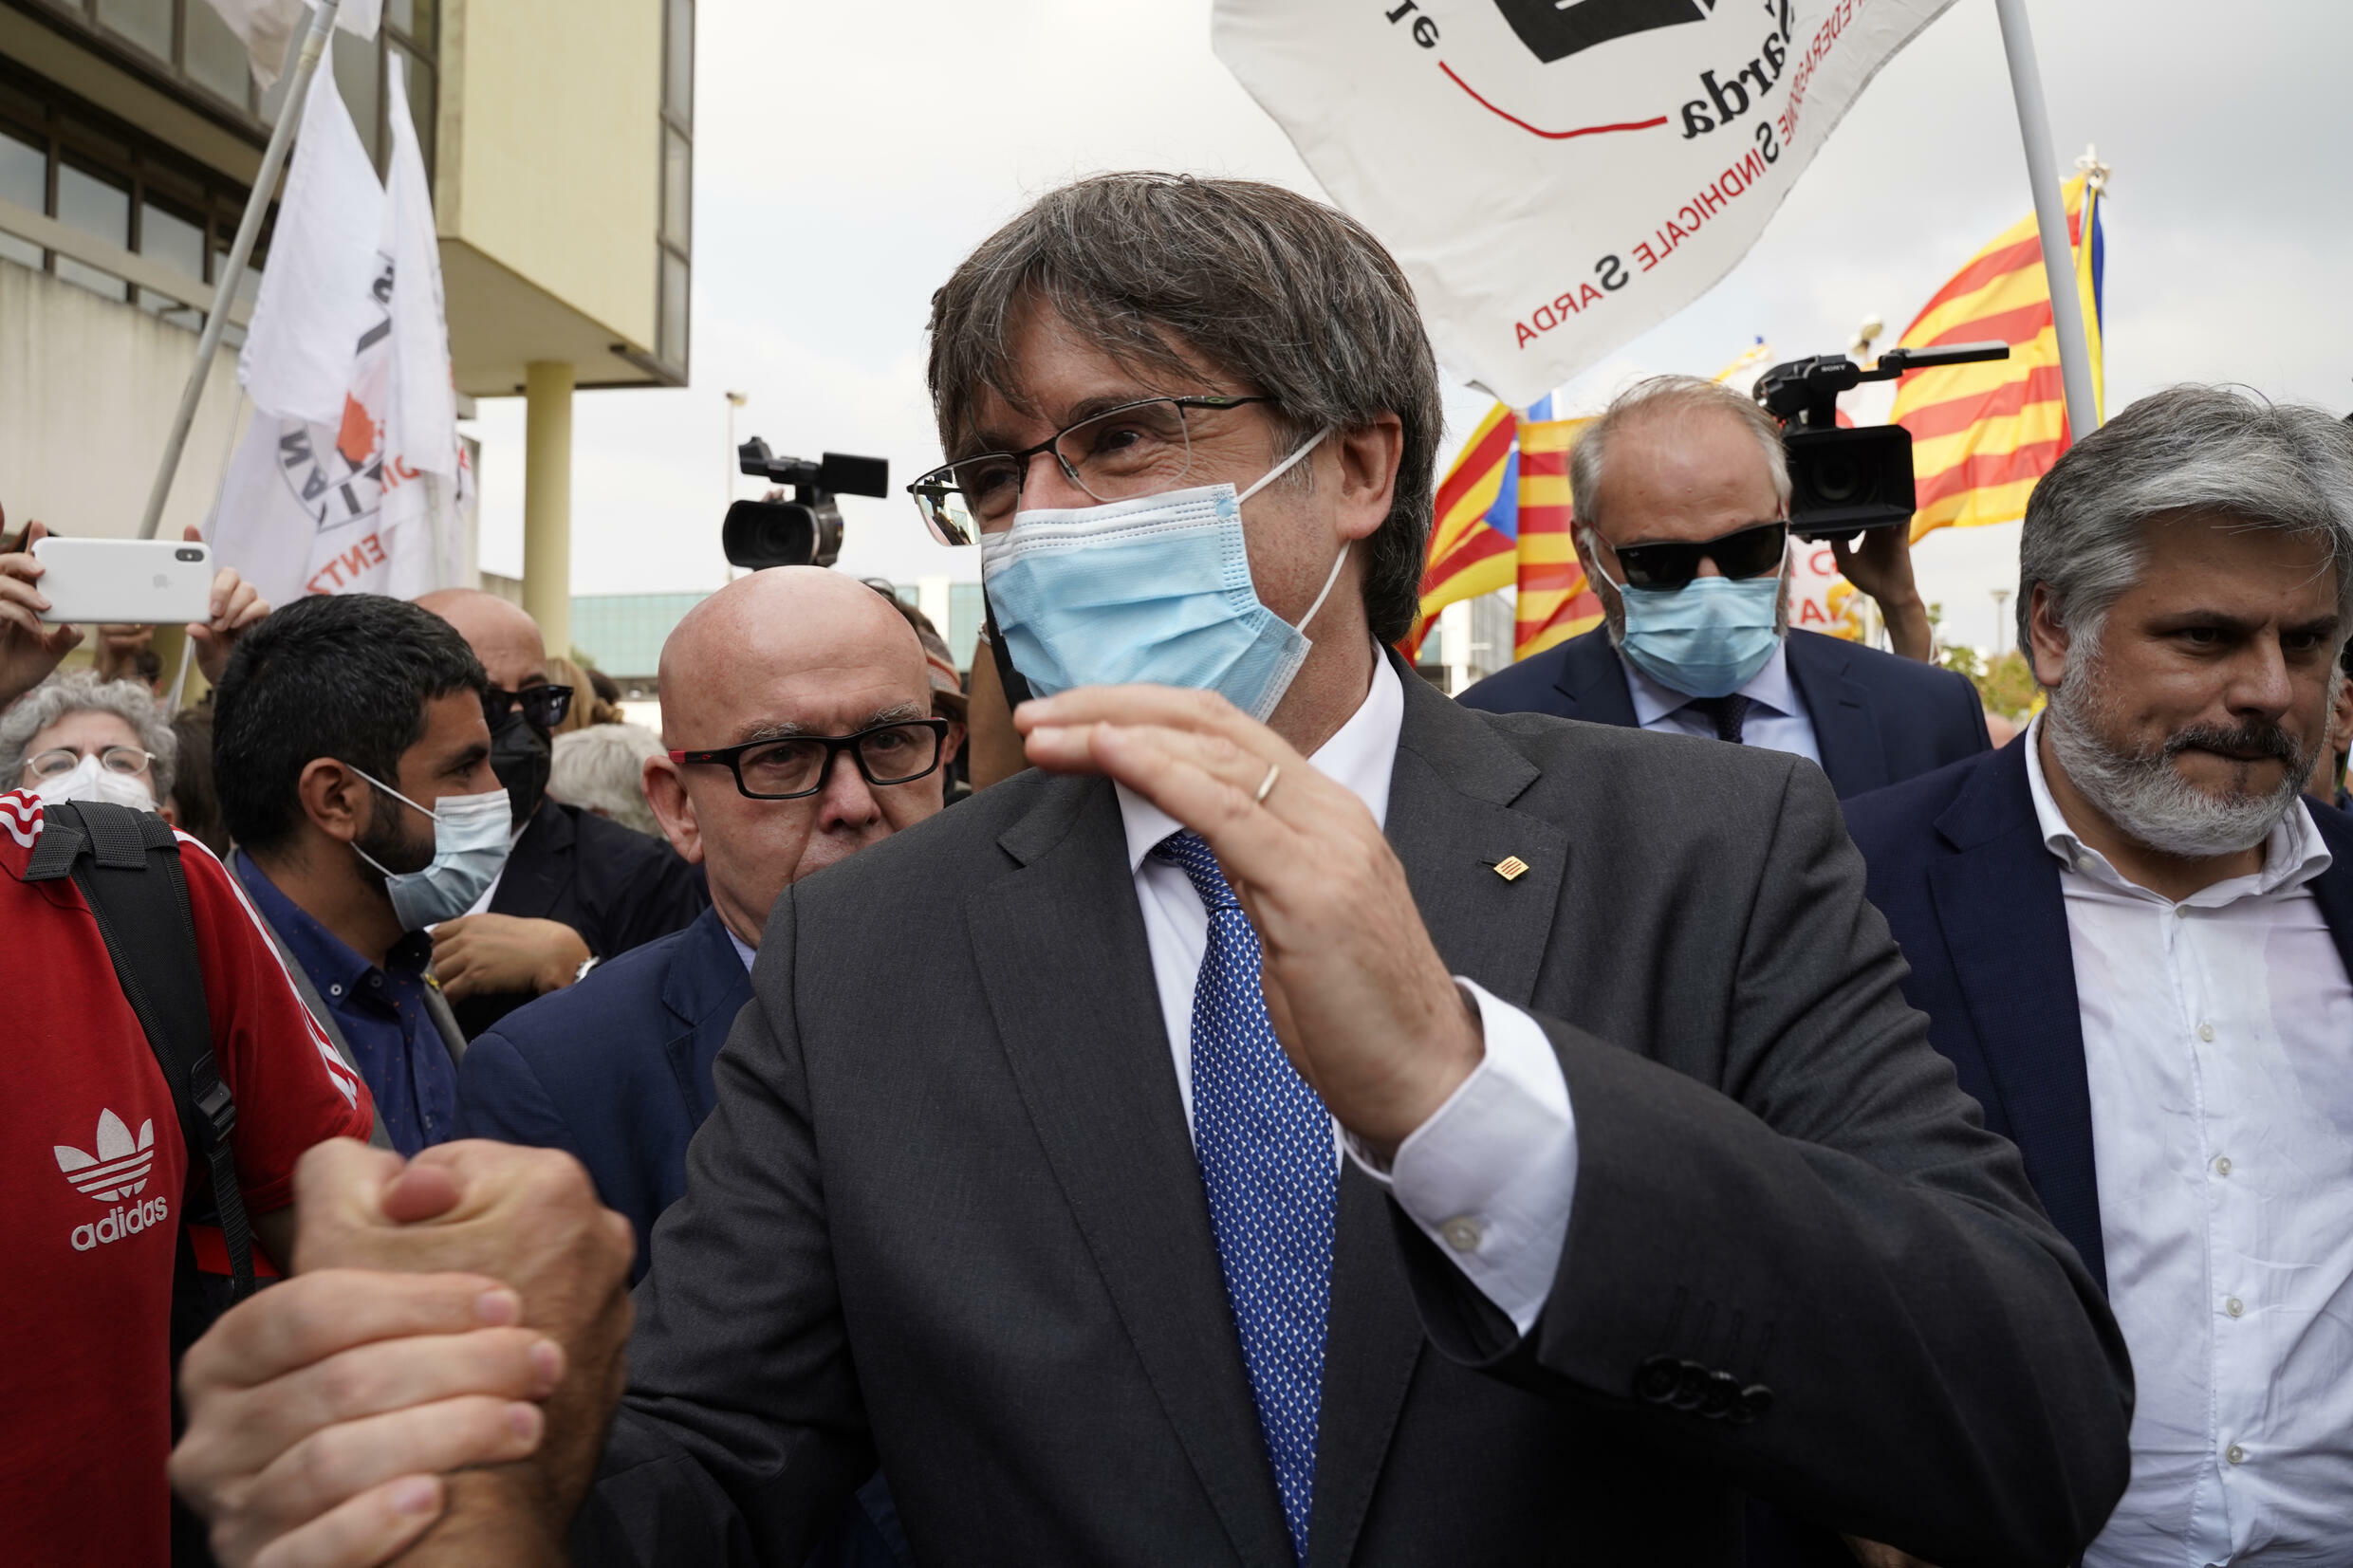 Puigdemont greets supporters outside the Sassari courthouse after his extradition hearing